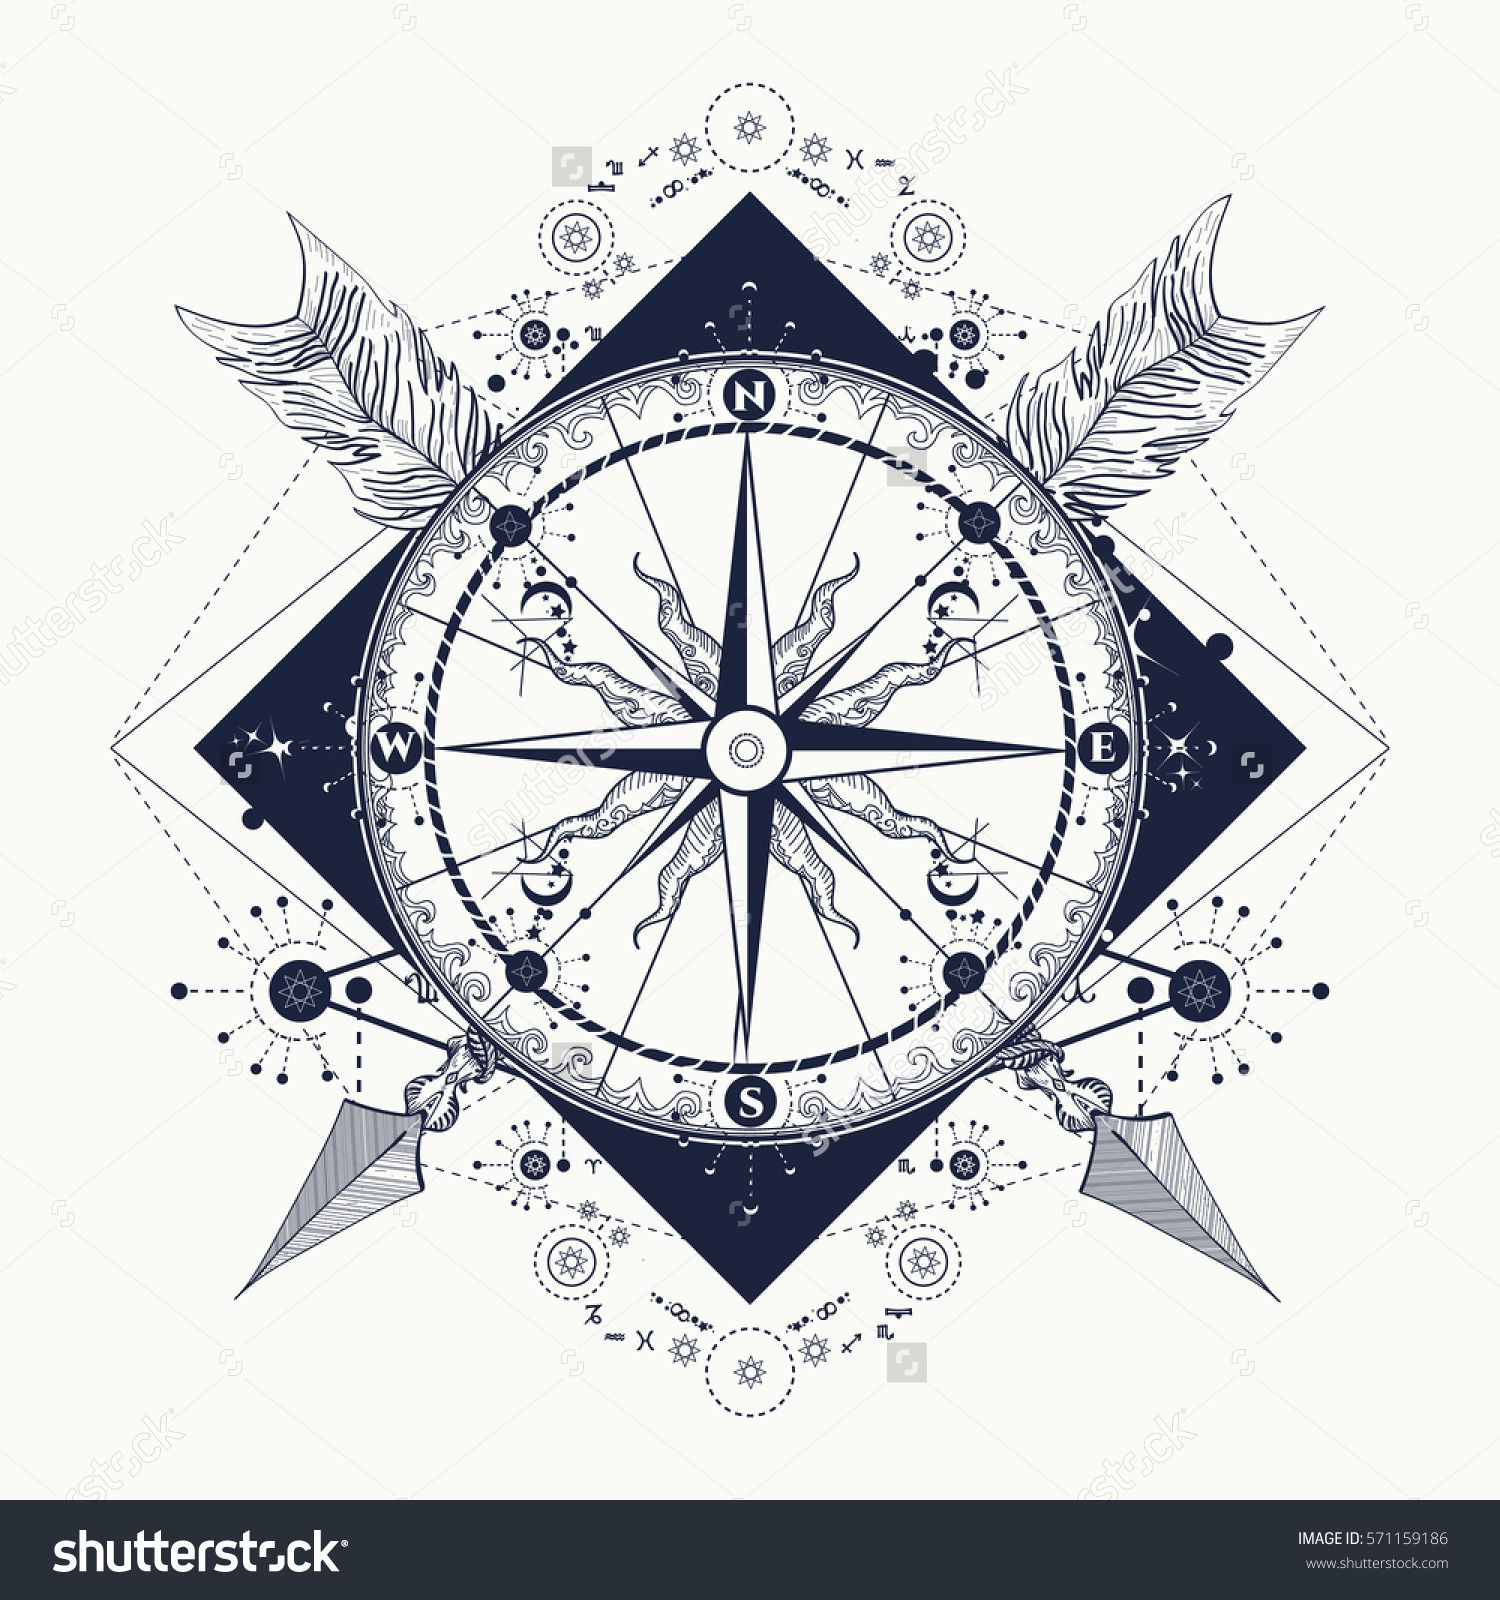 Image result for nautical compass art pinterest compass and compass tattoo and t shirt design compass and crossed arrows tattoo art symbol of tourism adventure travel rose compass t shirt design biocorpaavc Images